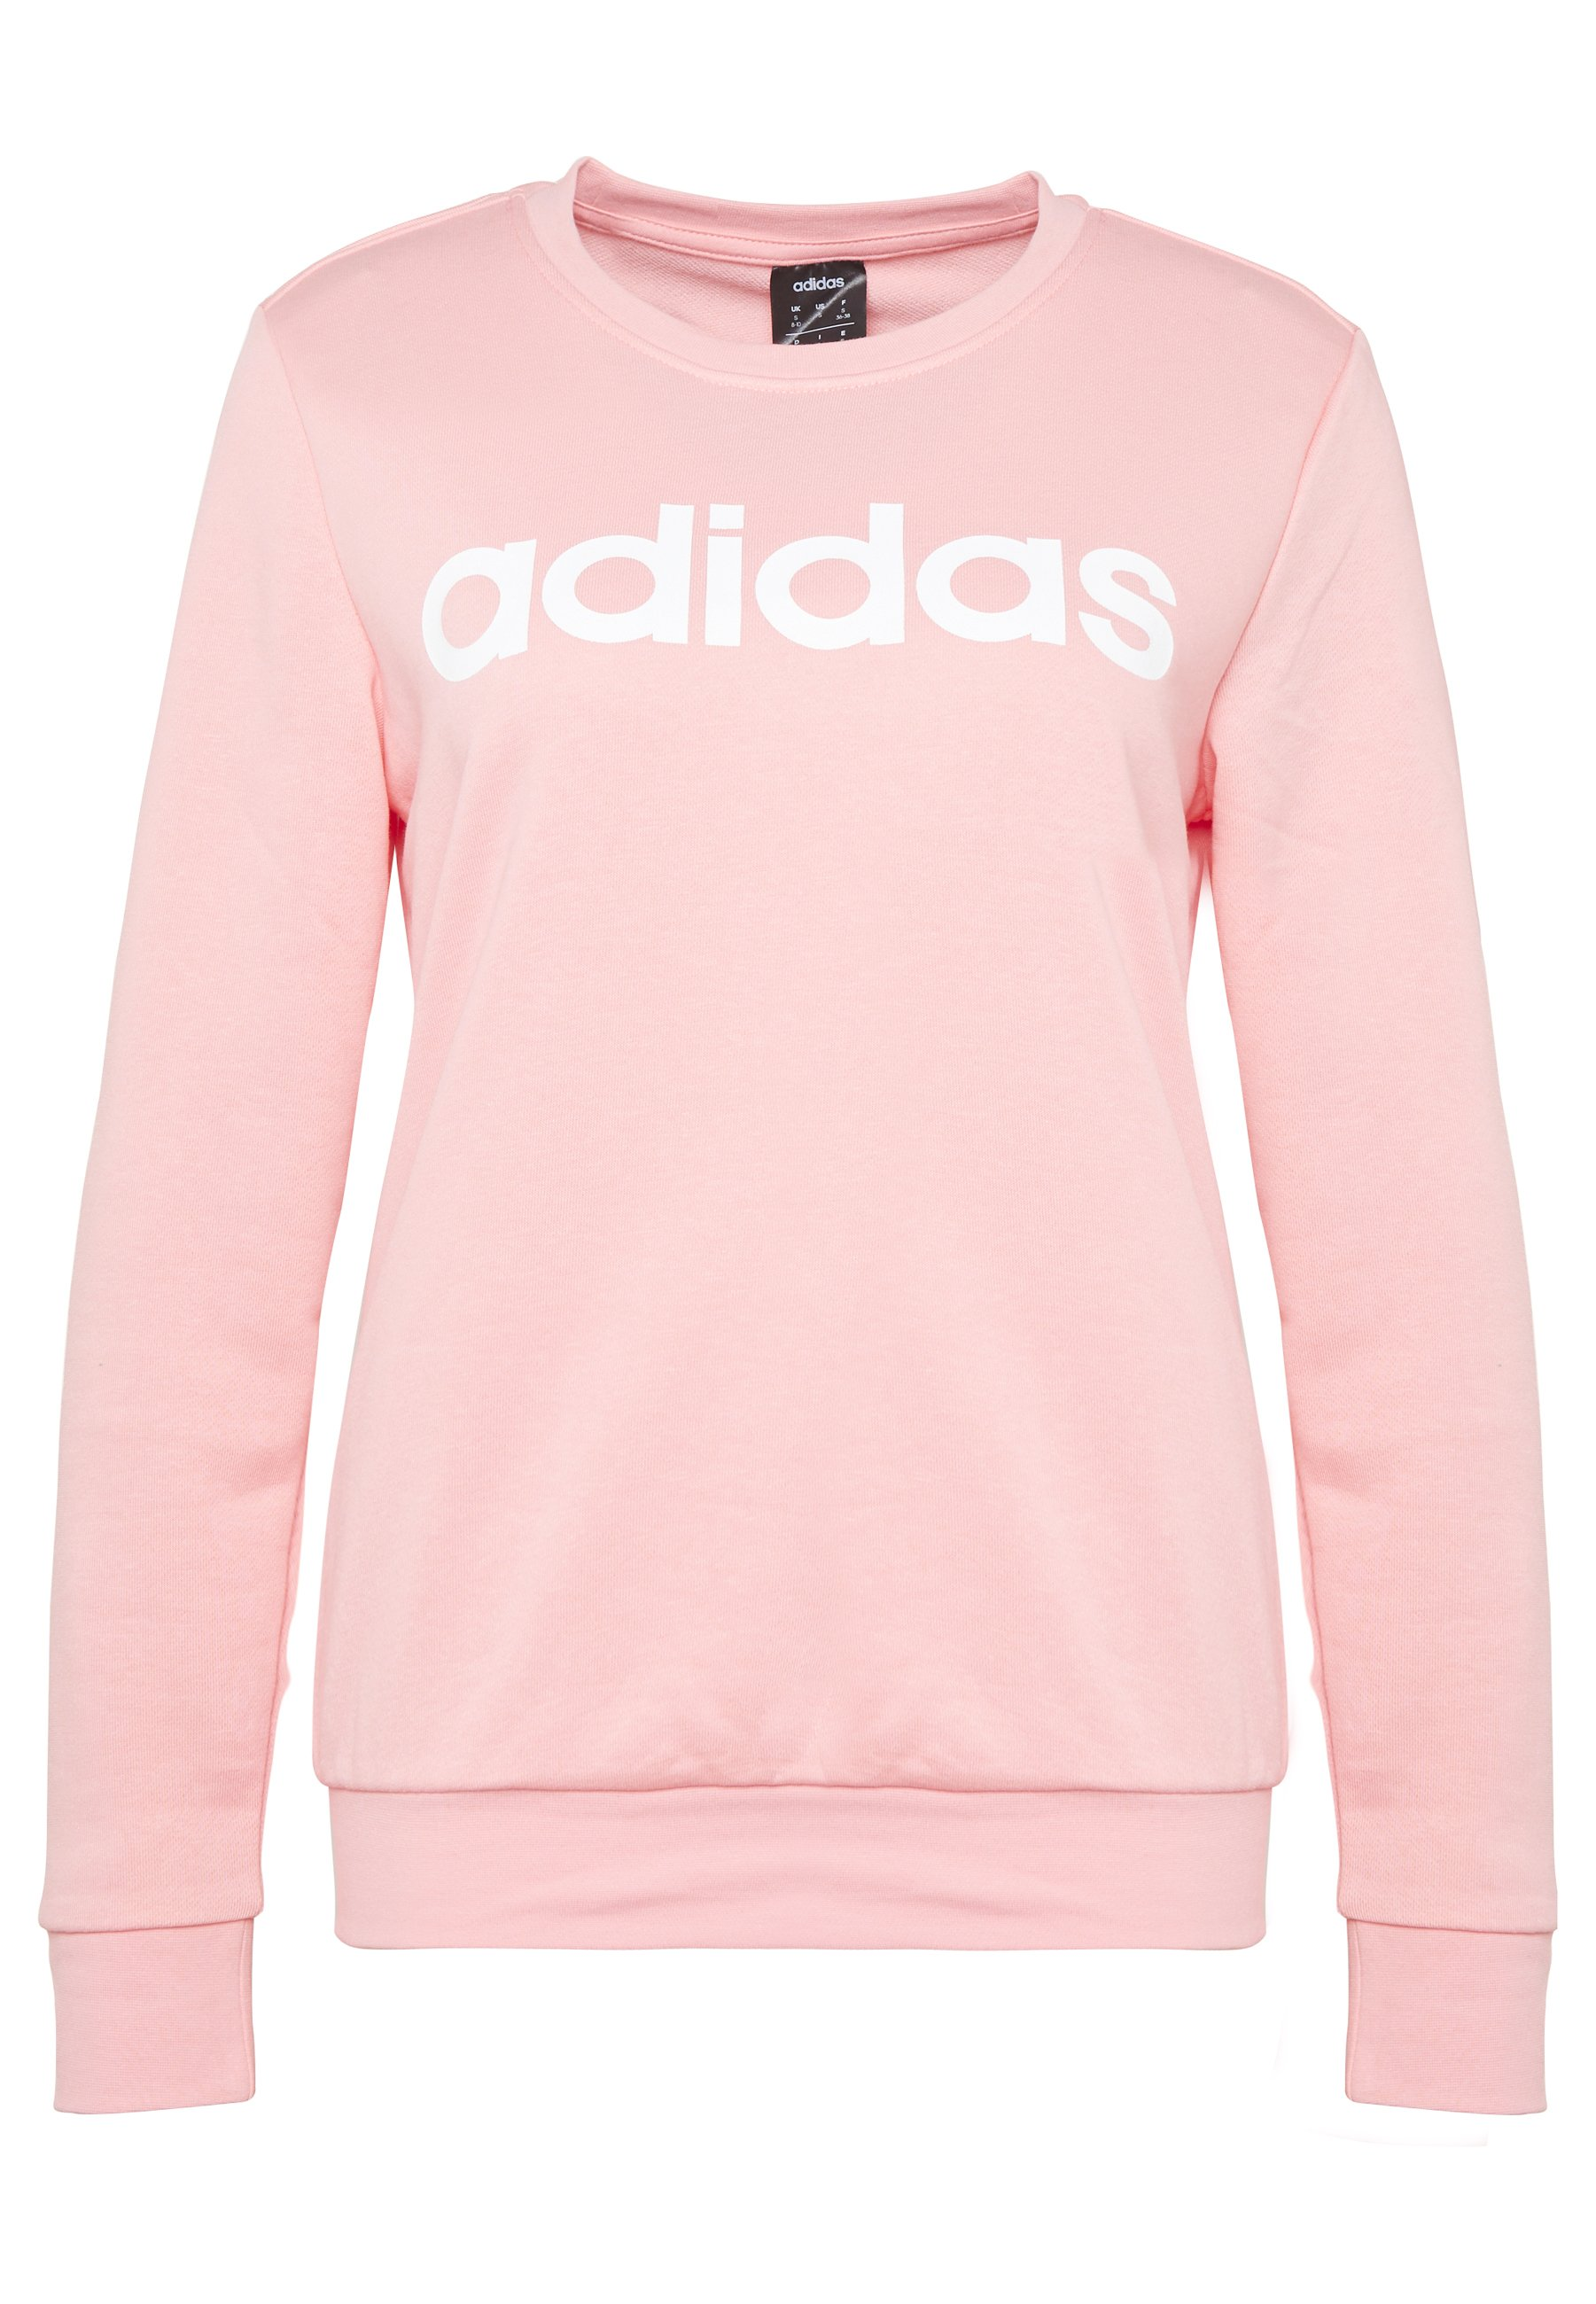 adidas Performance Sweatshirt pinkwhite Zalando.at